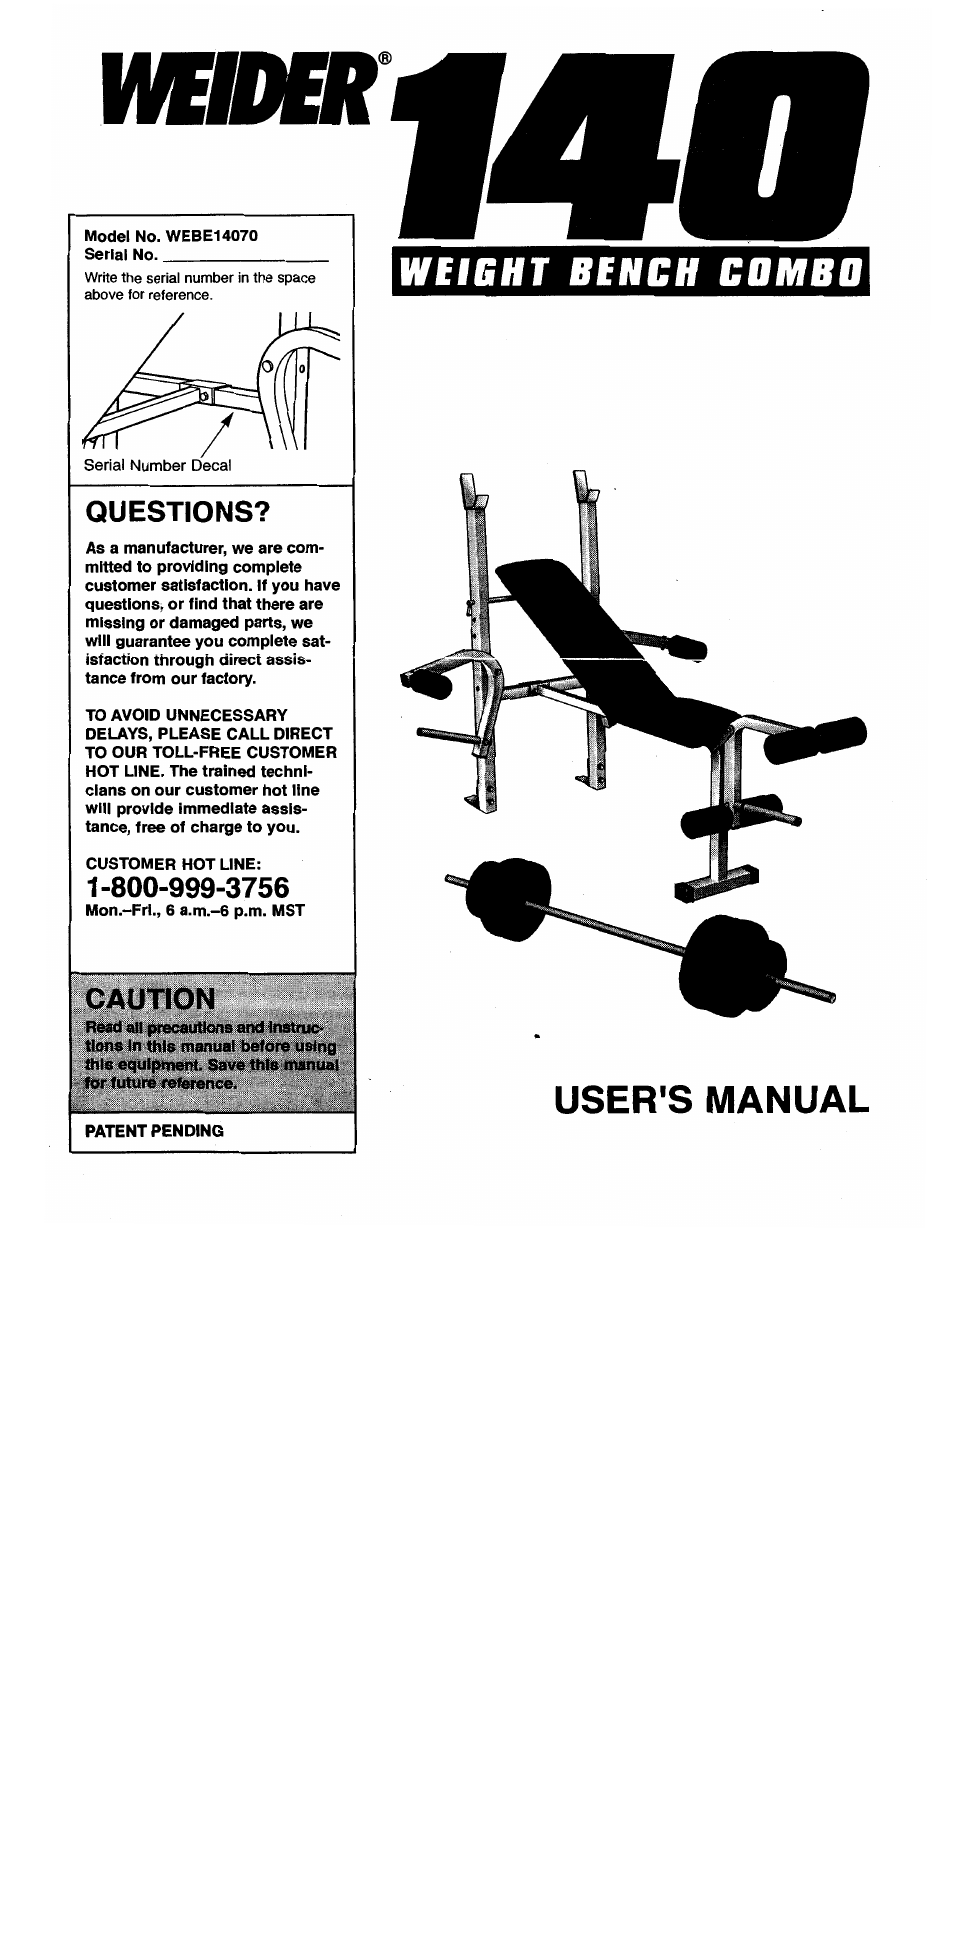 Weider Pro 4300 Manual Ebook 1995 Gm Fleetwood Brogh 57 Fuse Box Diagram English Page 25 Array 148 Weight Bench Www Topsimages Com Rh